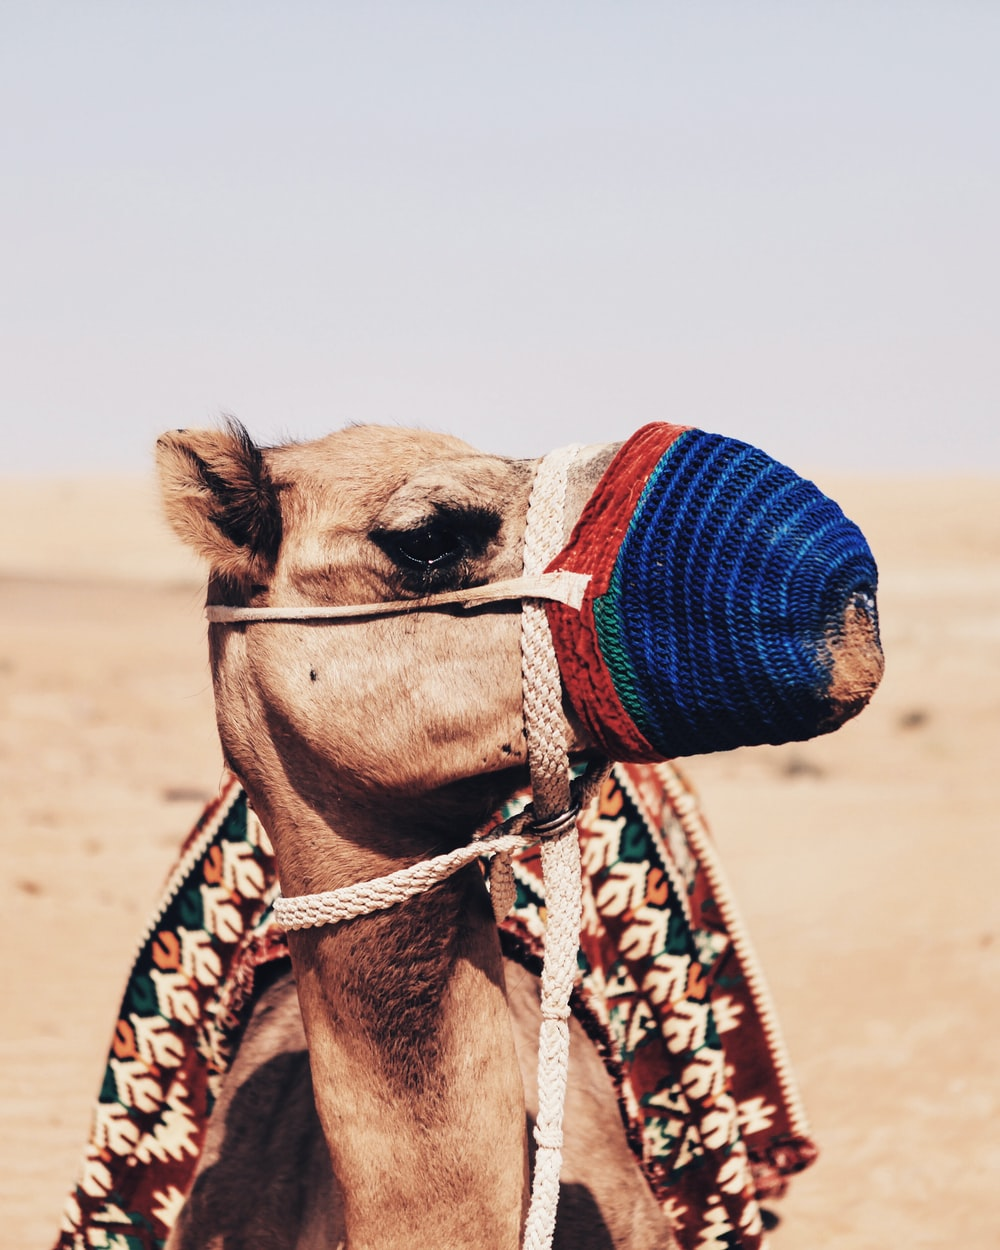 camel with blue and red mouth cover during daylight